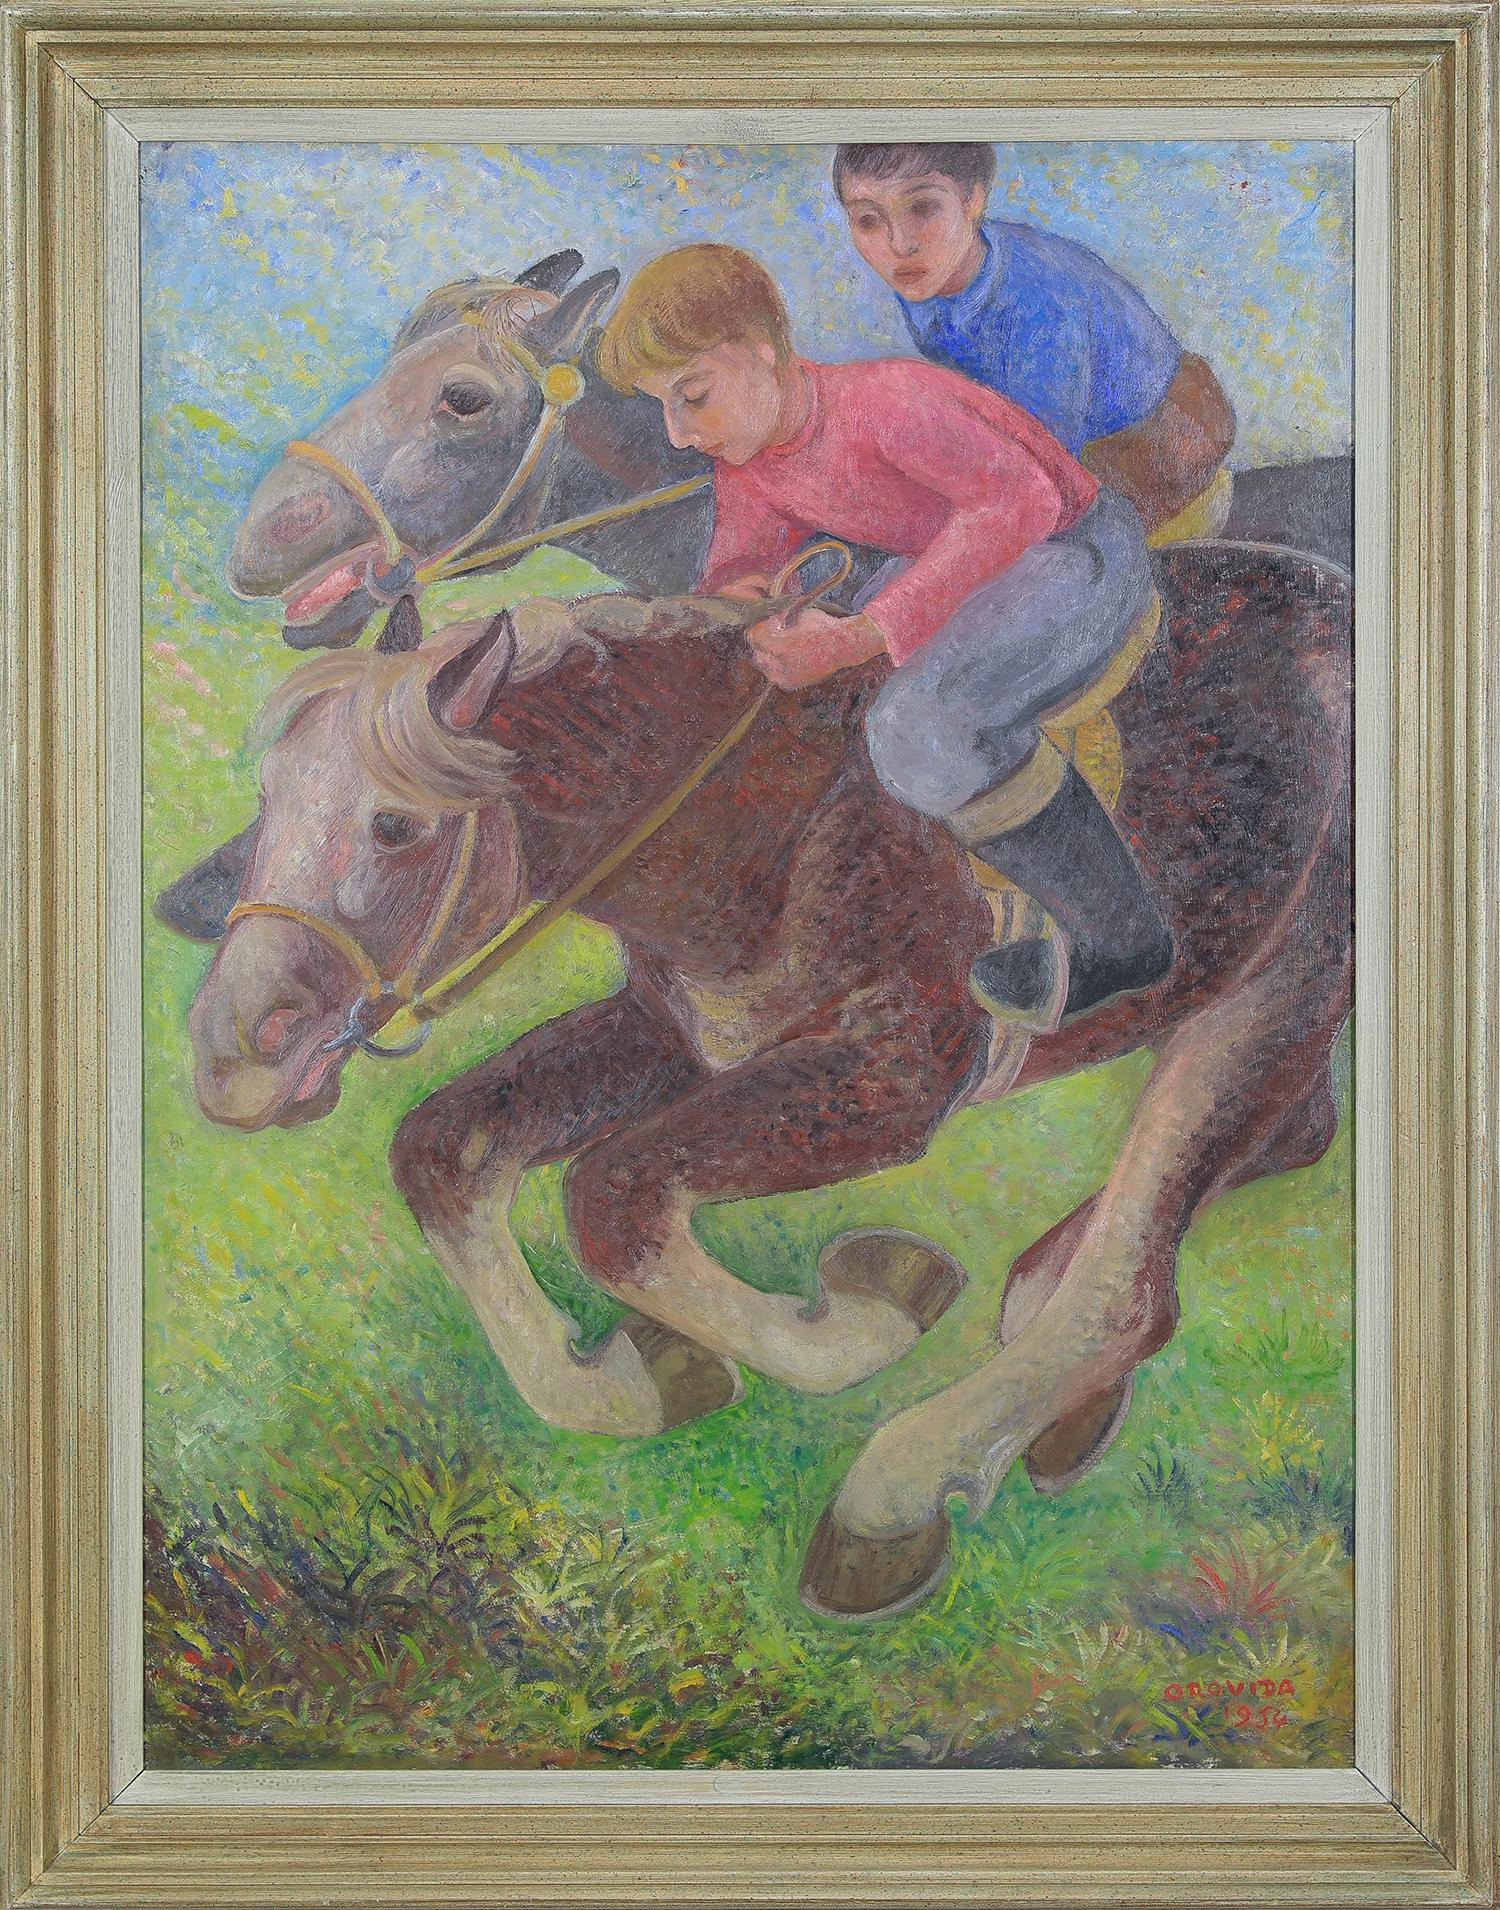 Animal painting by Orovida Camille Pissarro titled 'Exercising Ponies'